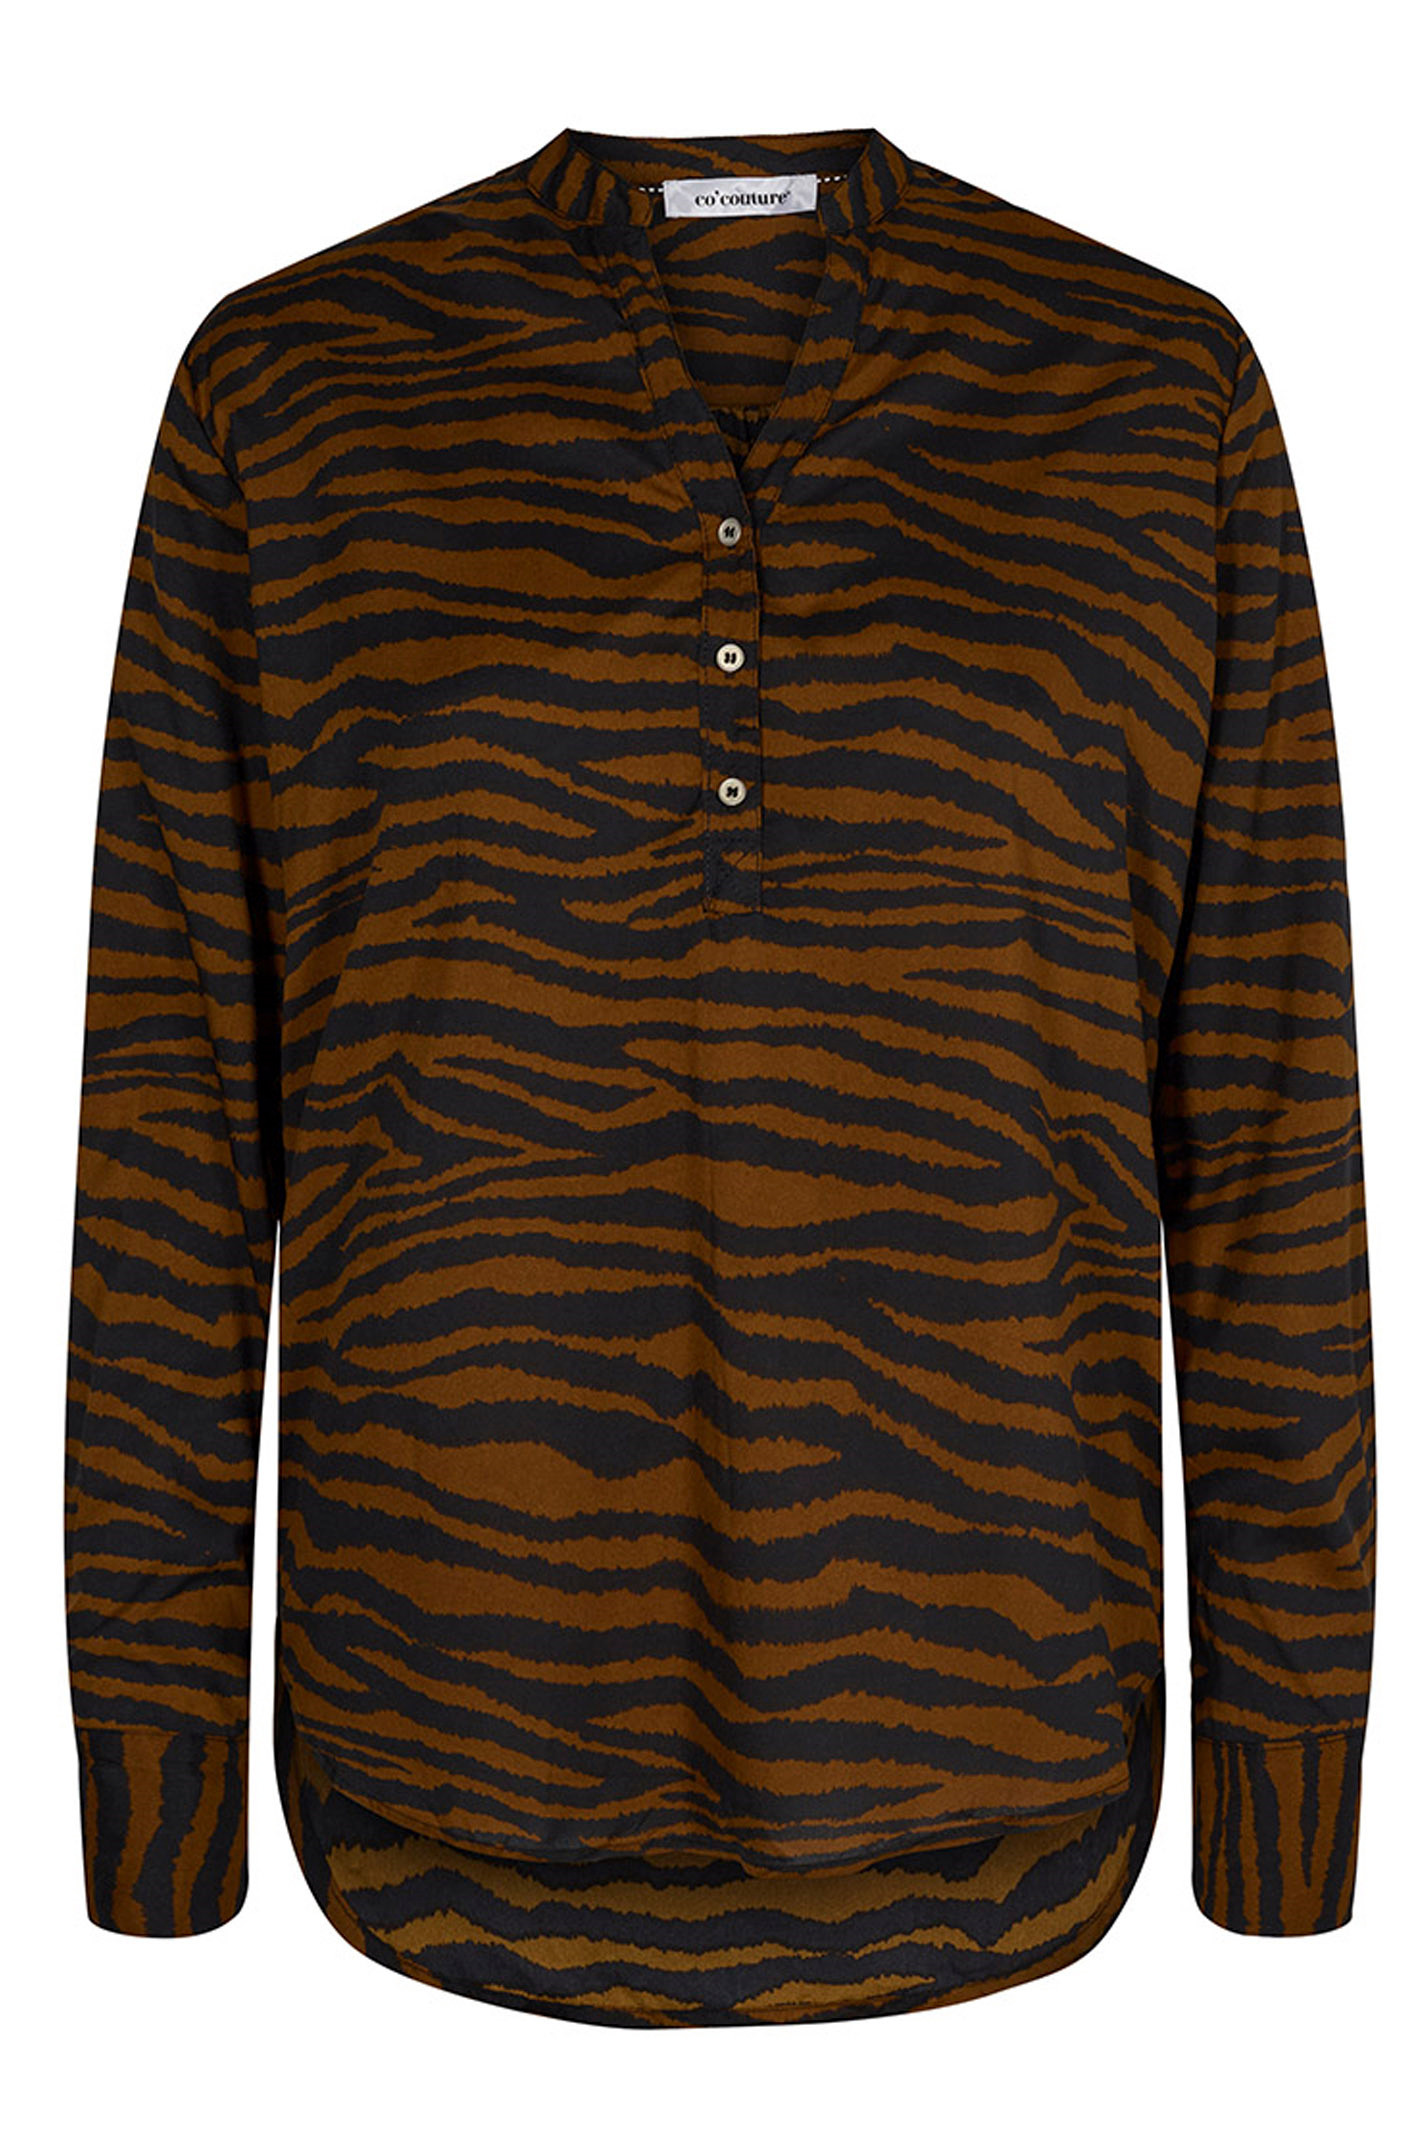 CO'COUTURE COC JAVA 95161 TIGER